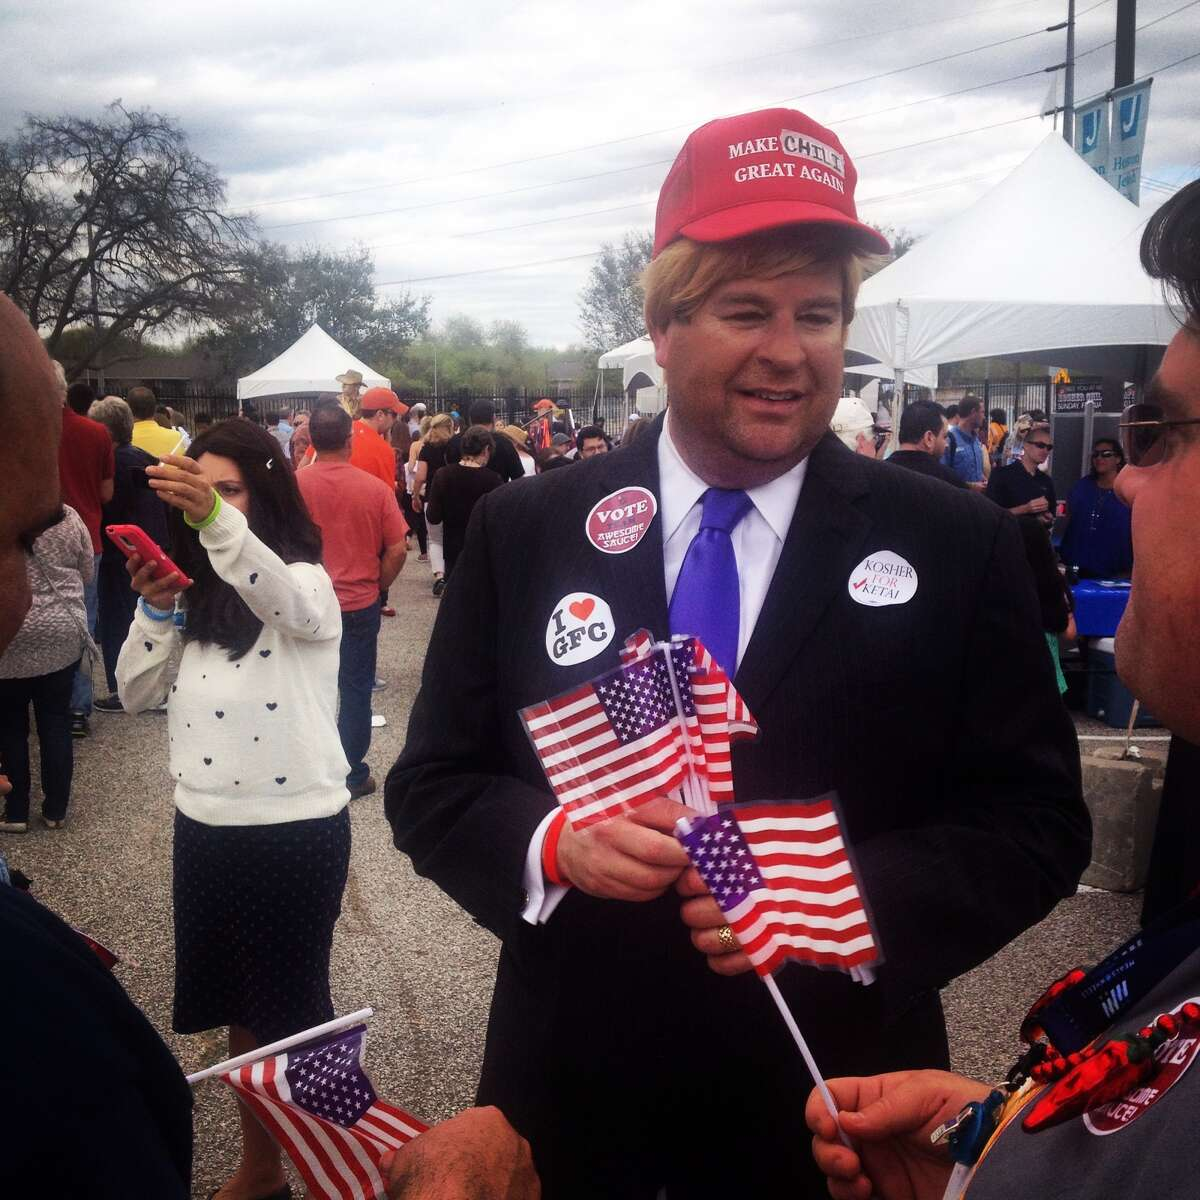 A Donald Trump impersonator made a cameo and quickly became a selfie pit stop for many festival attendees. Note that his cap reads